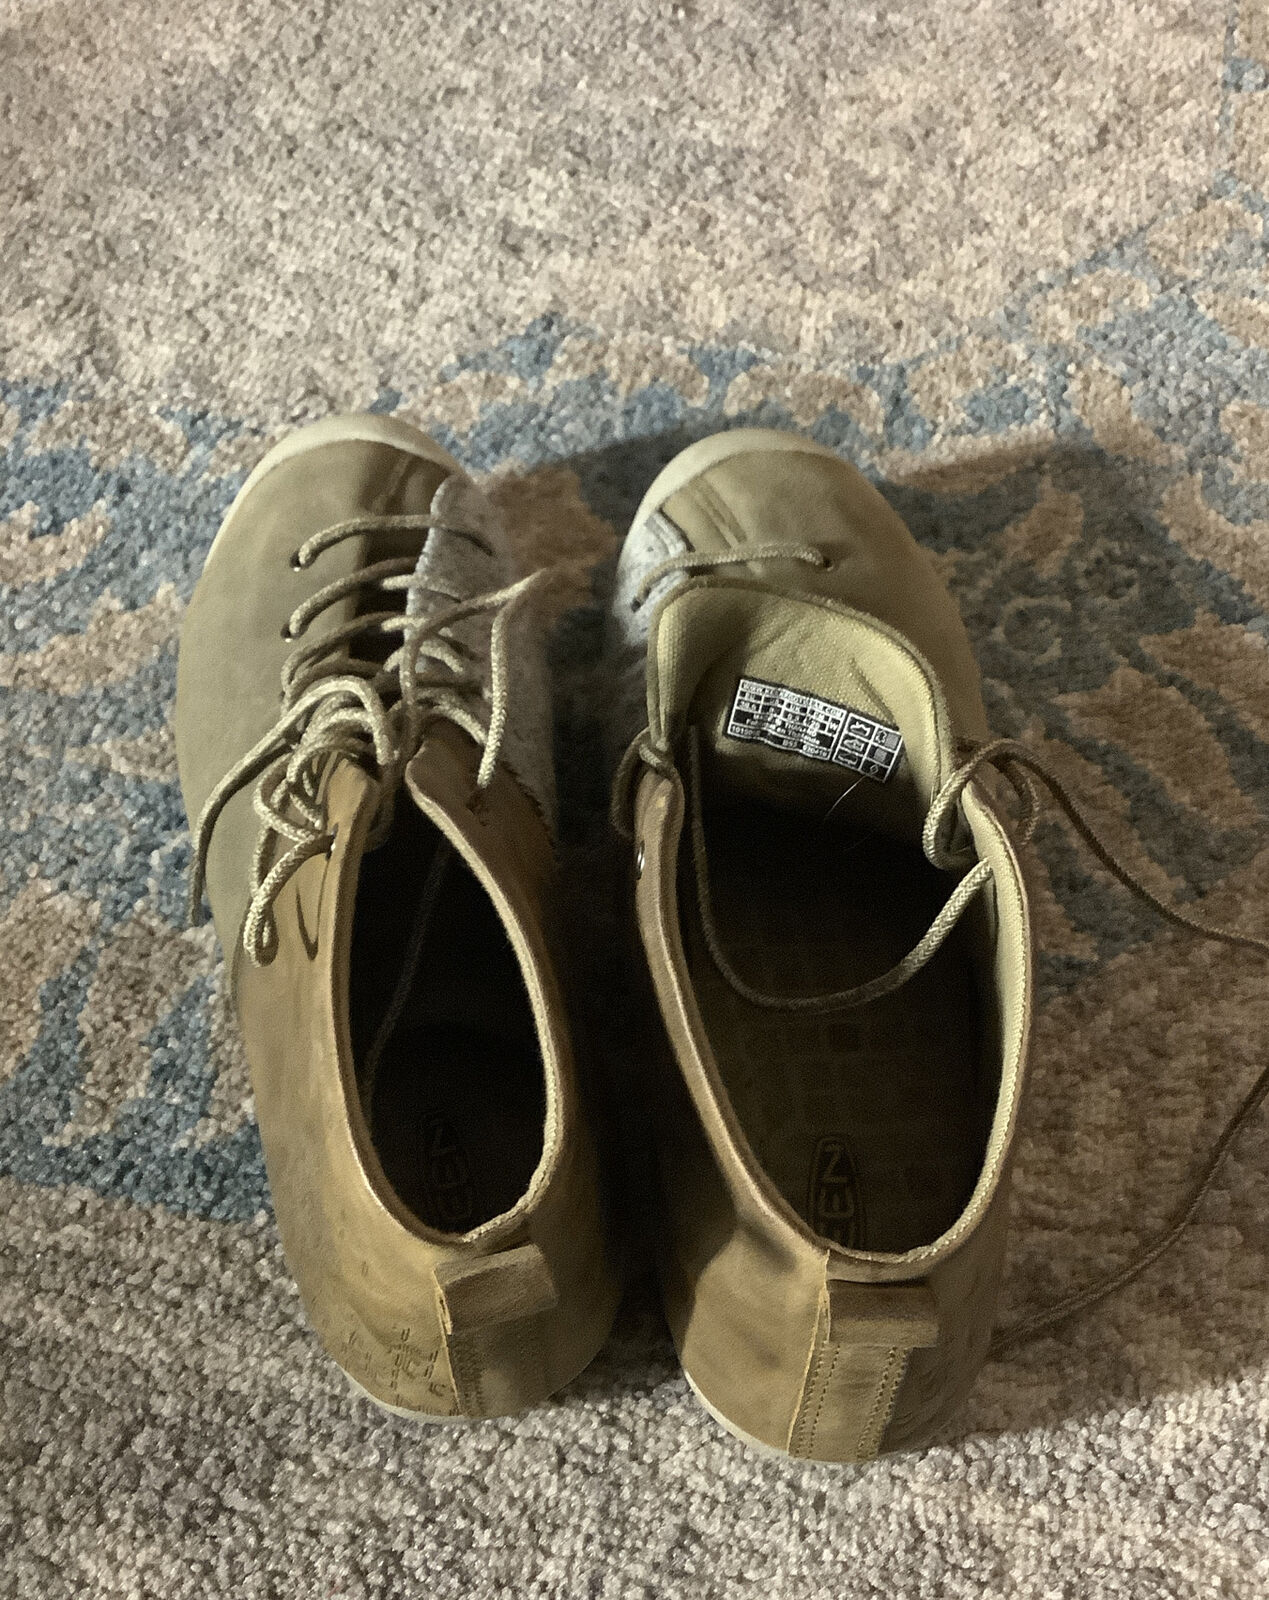 KEEN East Side Bootie Women's Size 5 Pale Olive Gargoyle Lace Up Boots ----(B22)